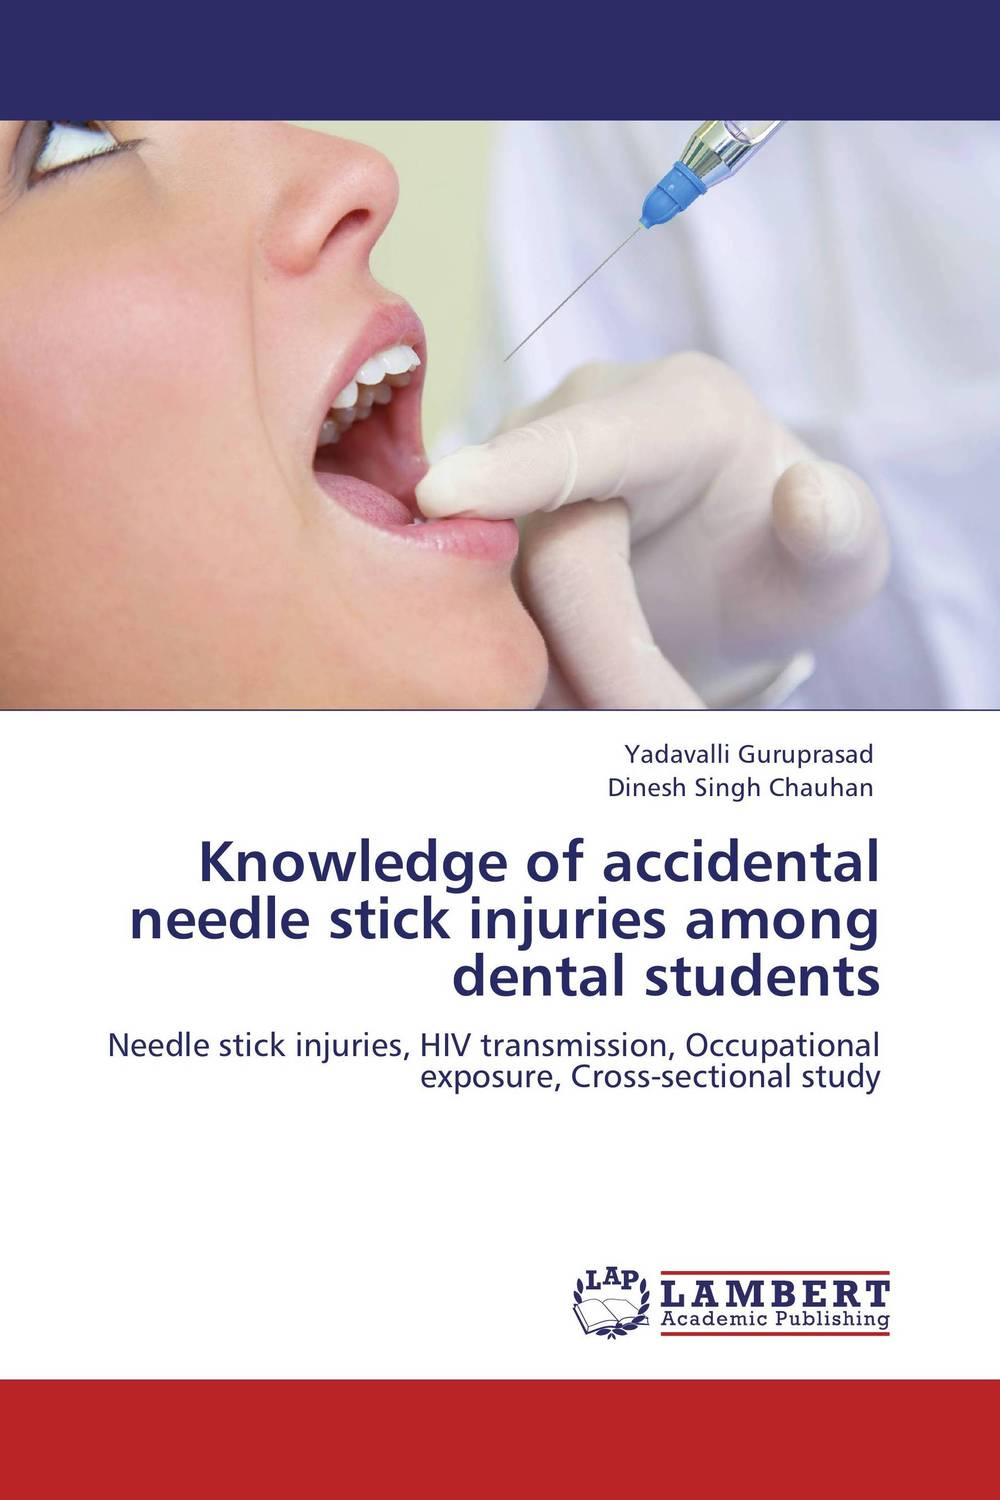 Knowledge of accidental needle stick injuries among dental students the accidental wedding